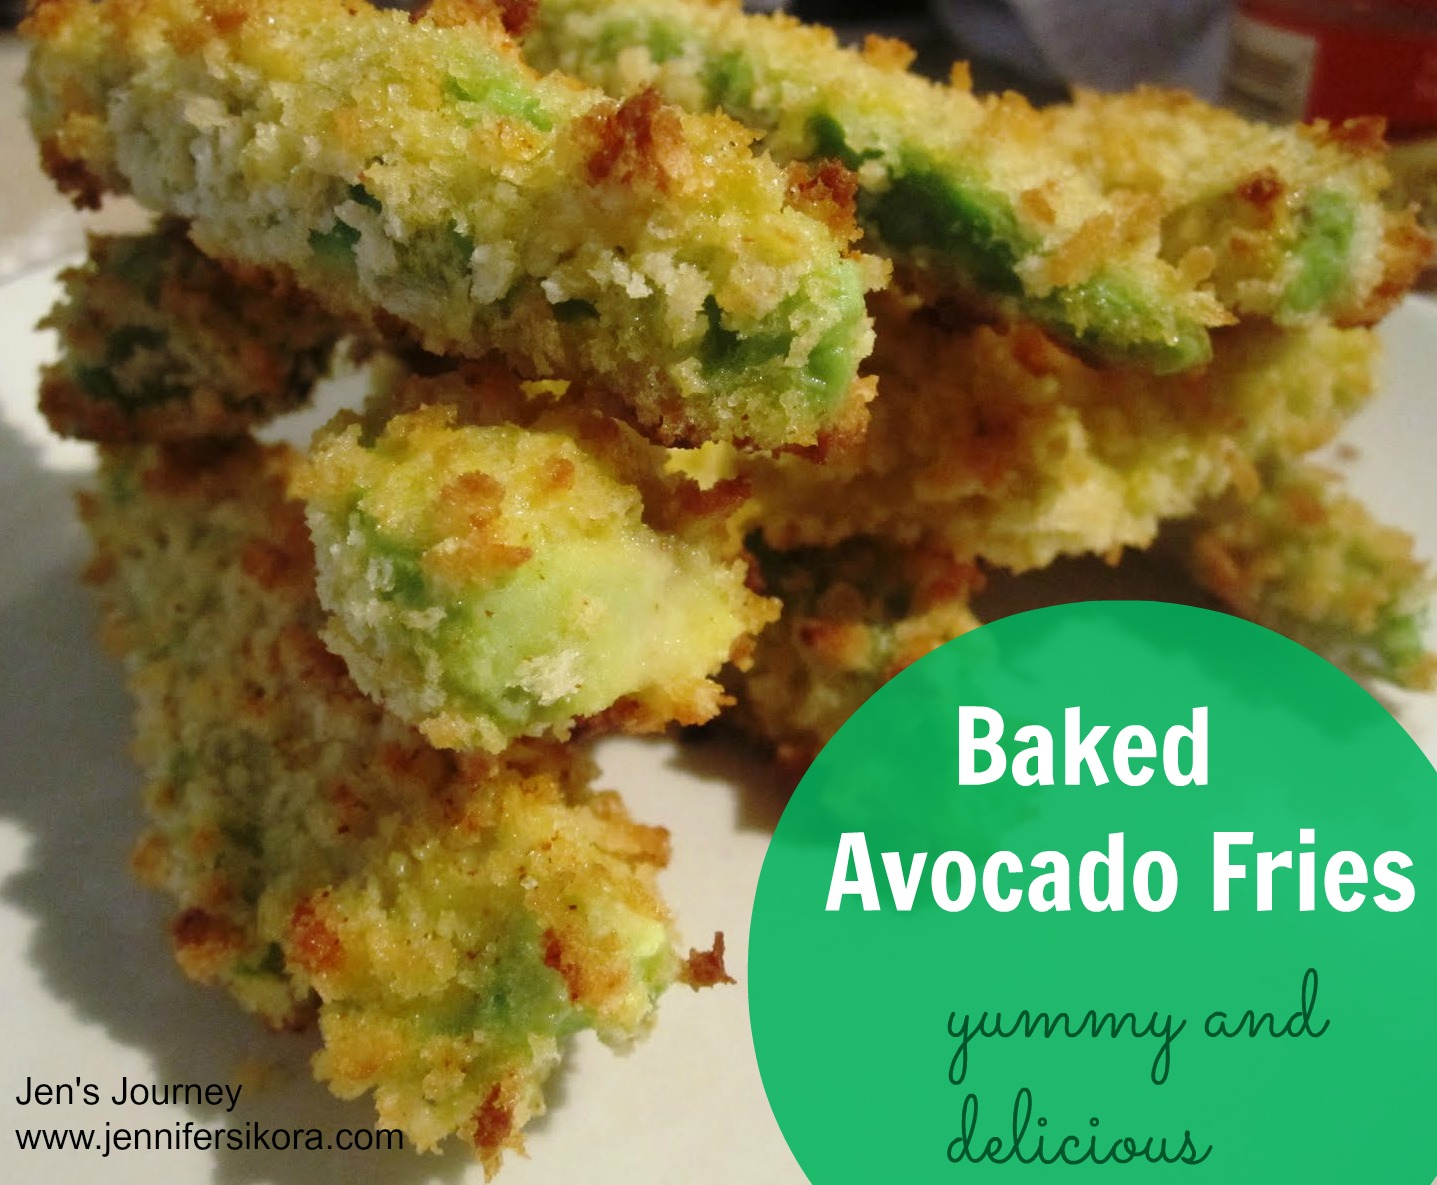 Healthy and Scrumptious Baked Avocado Fries